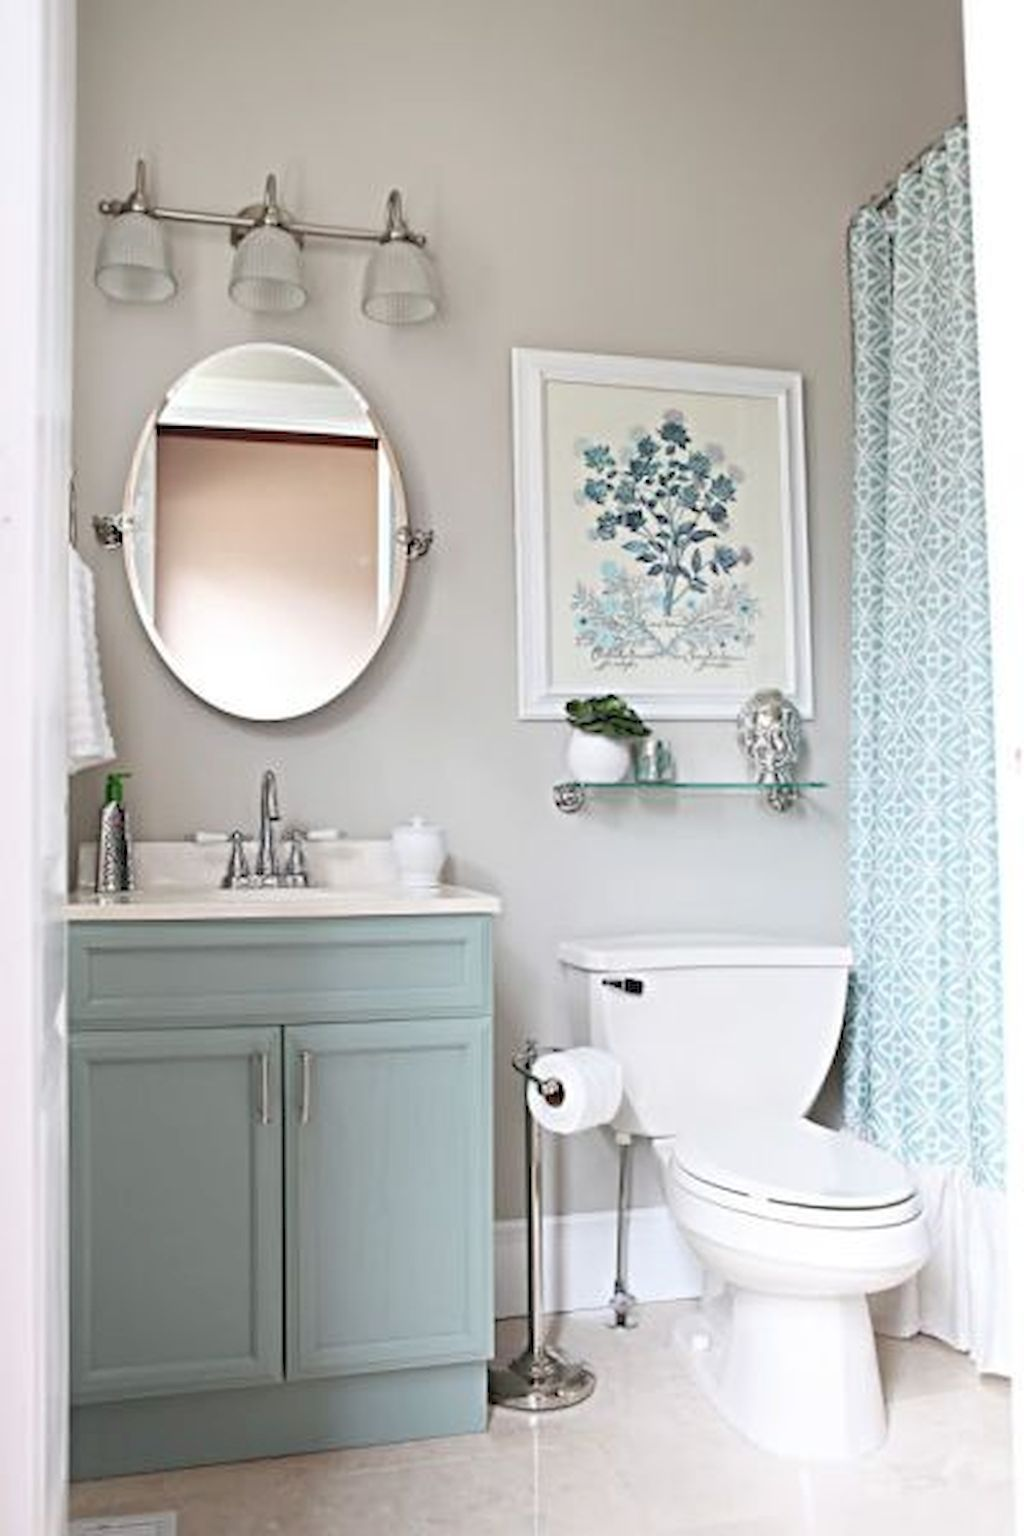 Adorable 40 Graceful Tiny Apartment Bathroom Remodel Ideas on A ...